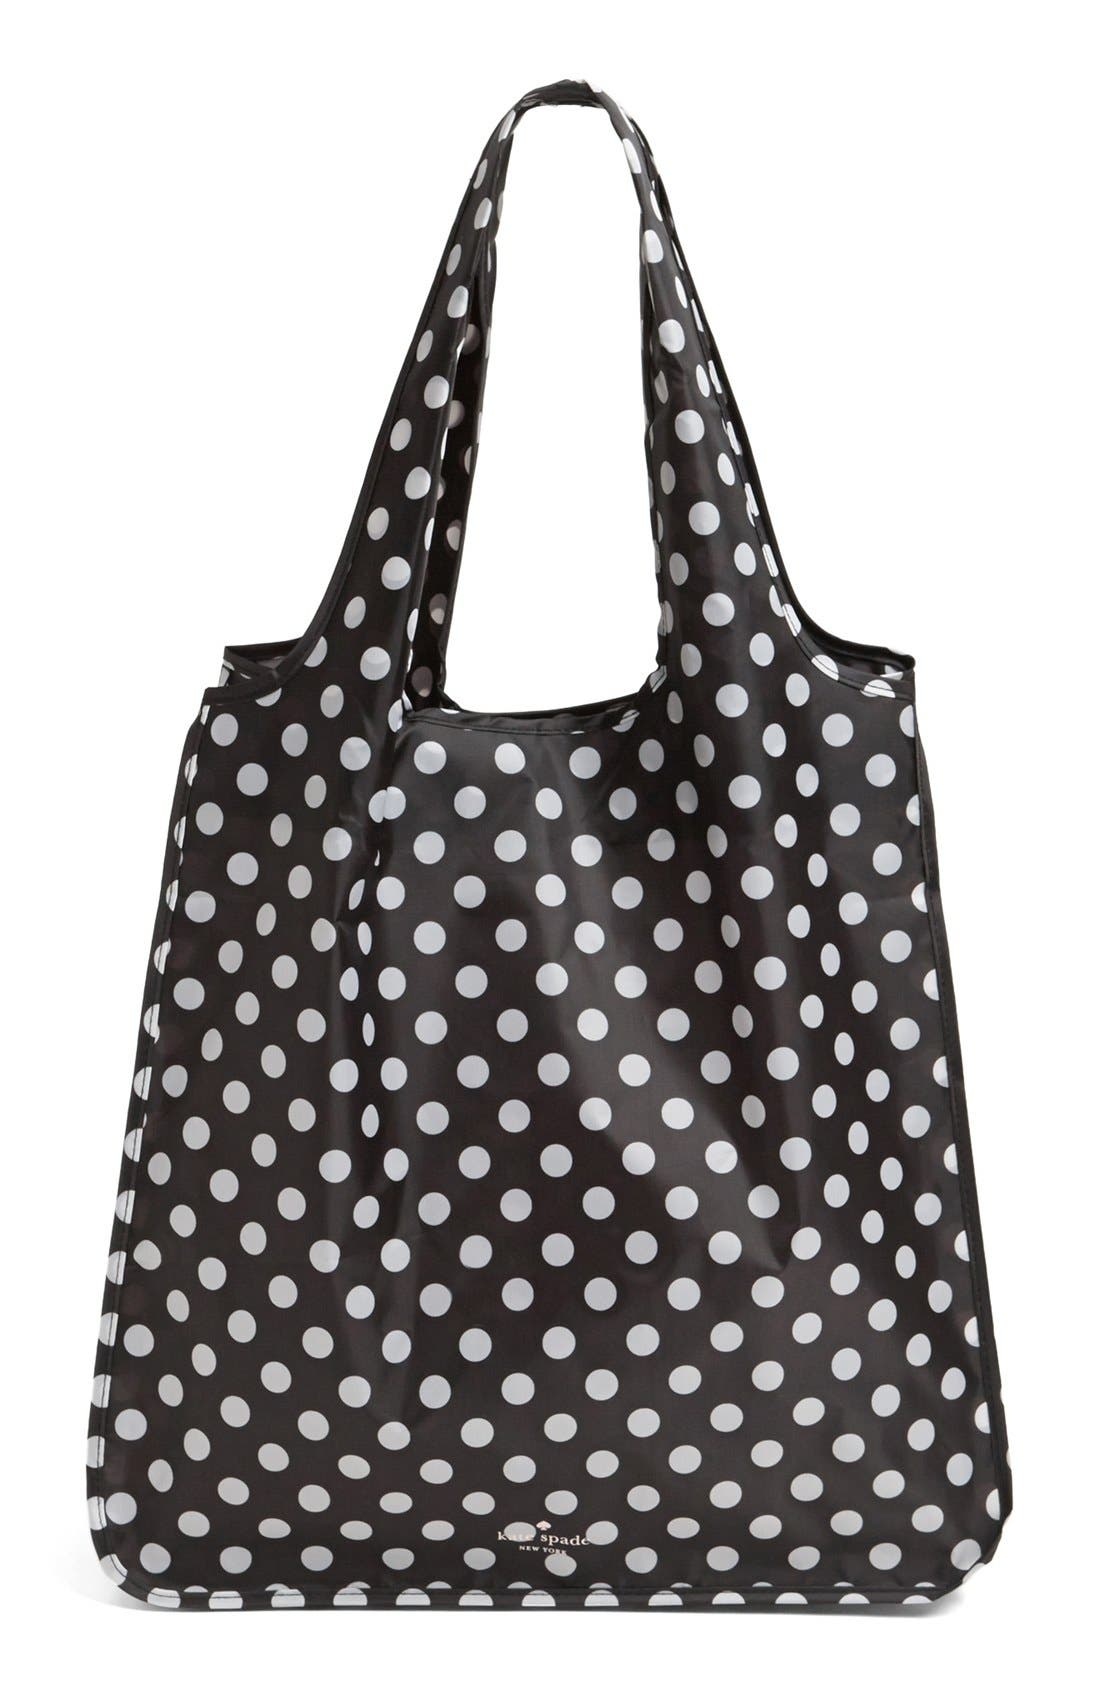 Main Image - kate spade new york 'polka dot' reusable shopping tote